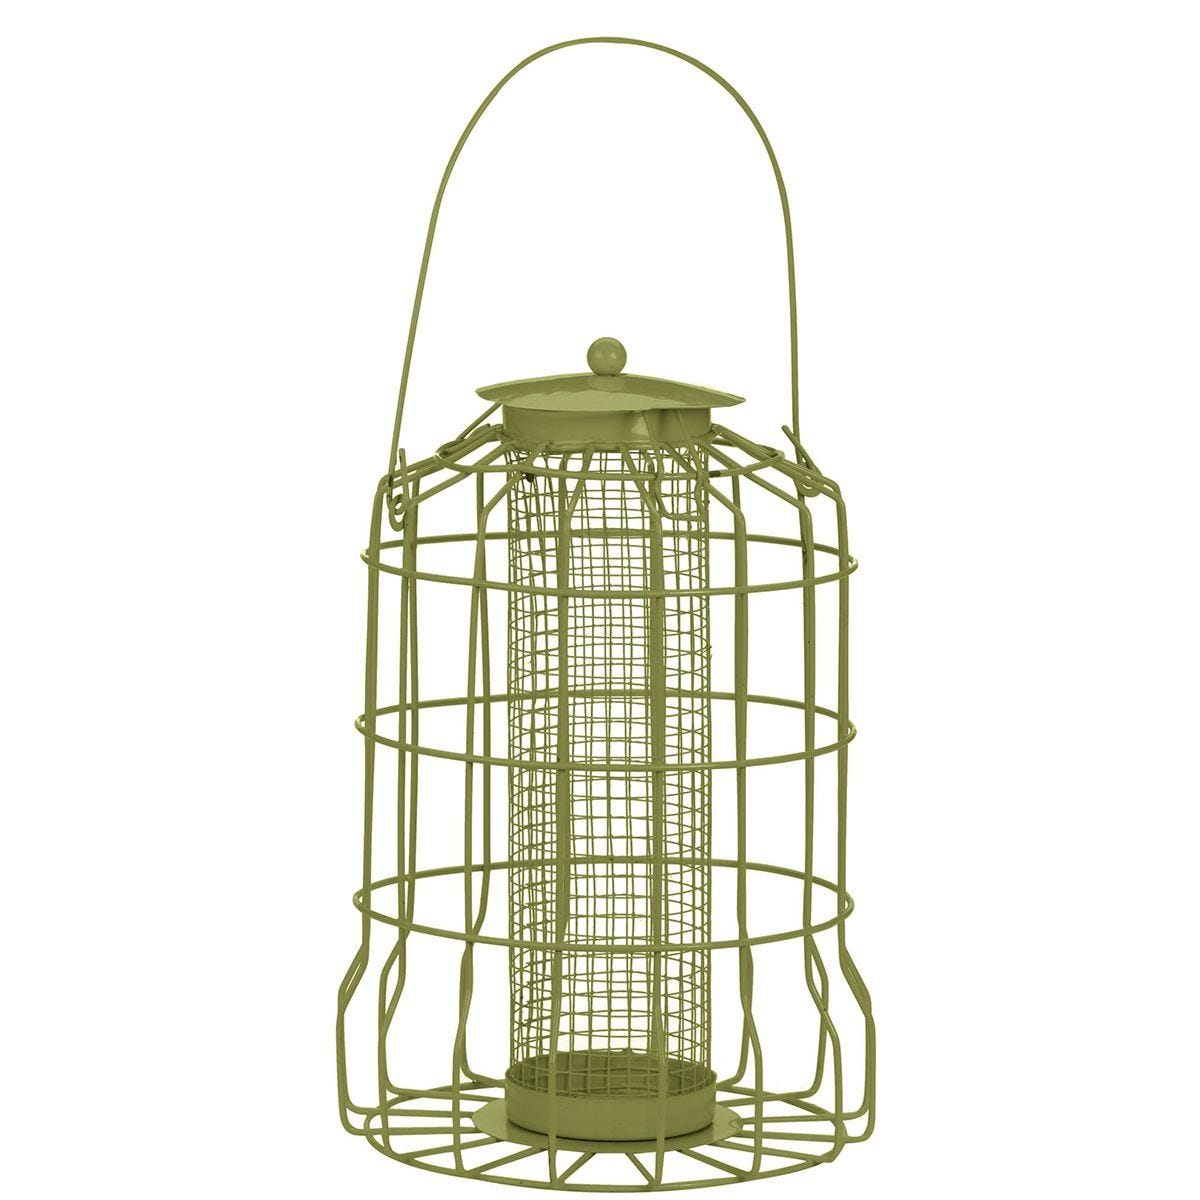 Chapelwood Squirrel Proof Peanut Bird Feeder - Olive Green